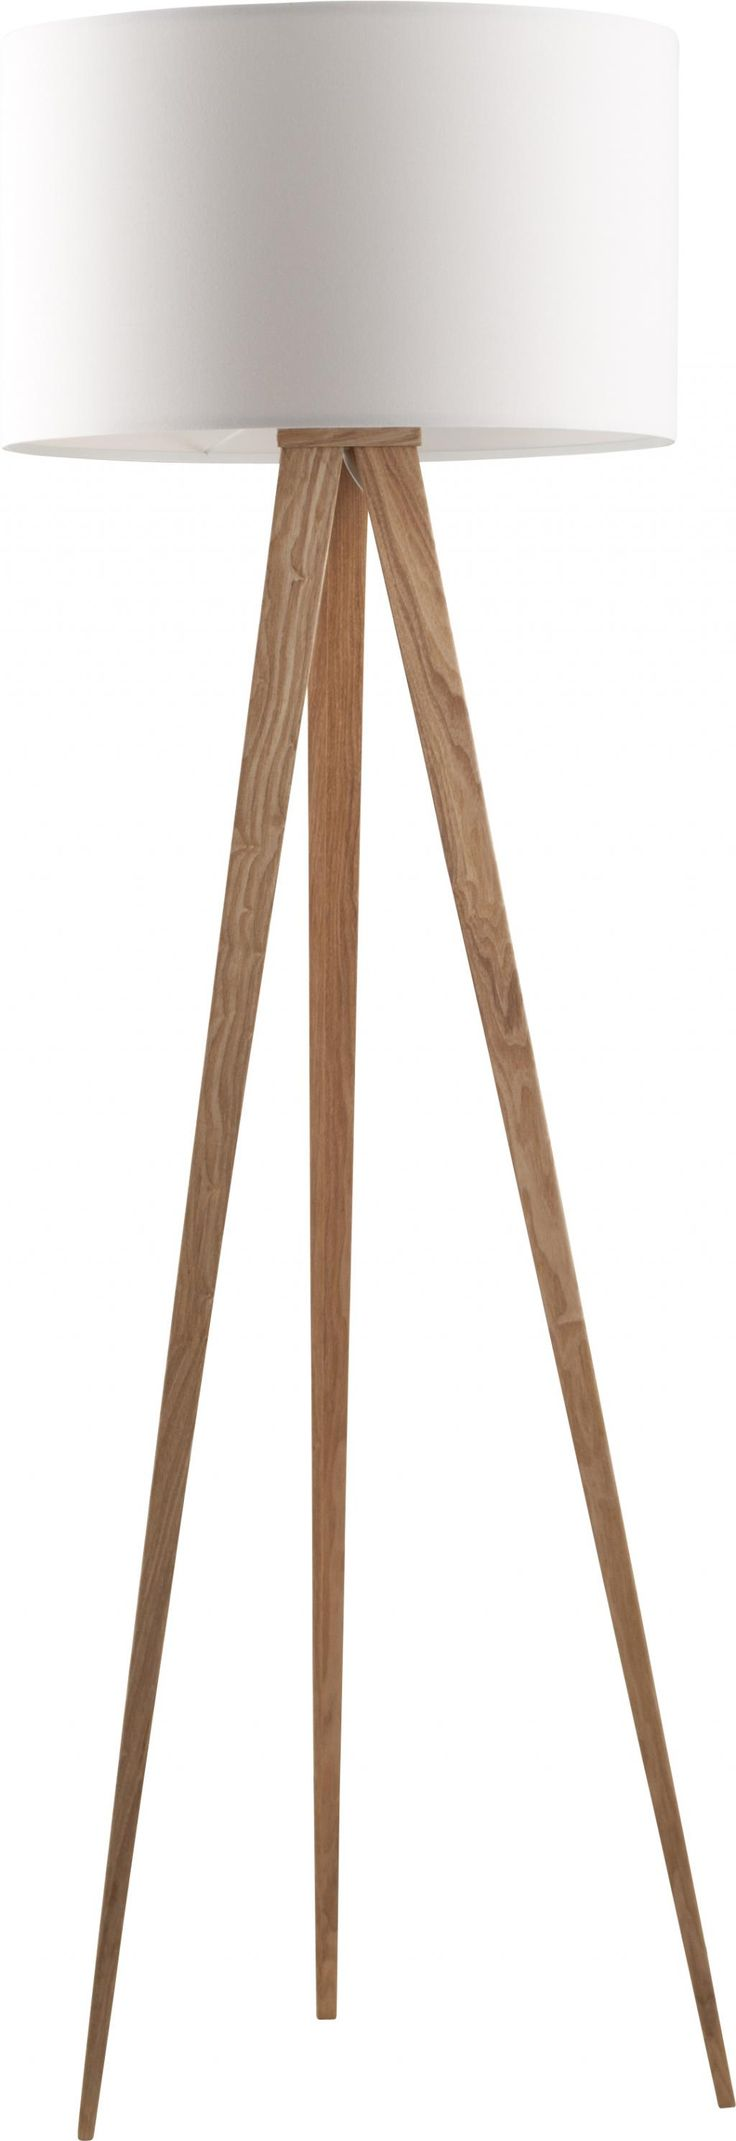 Vloerlamp Tripod - Hout - Wit - Zuiver